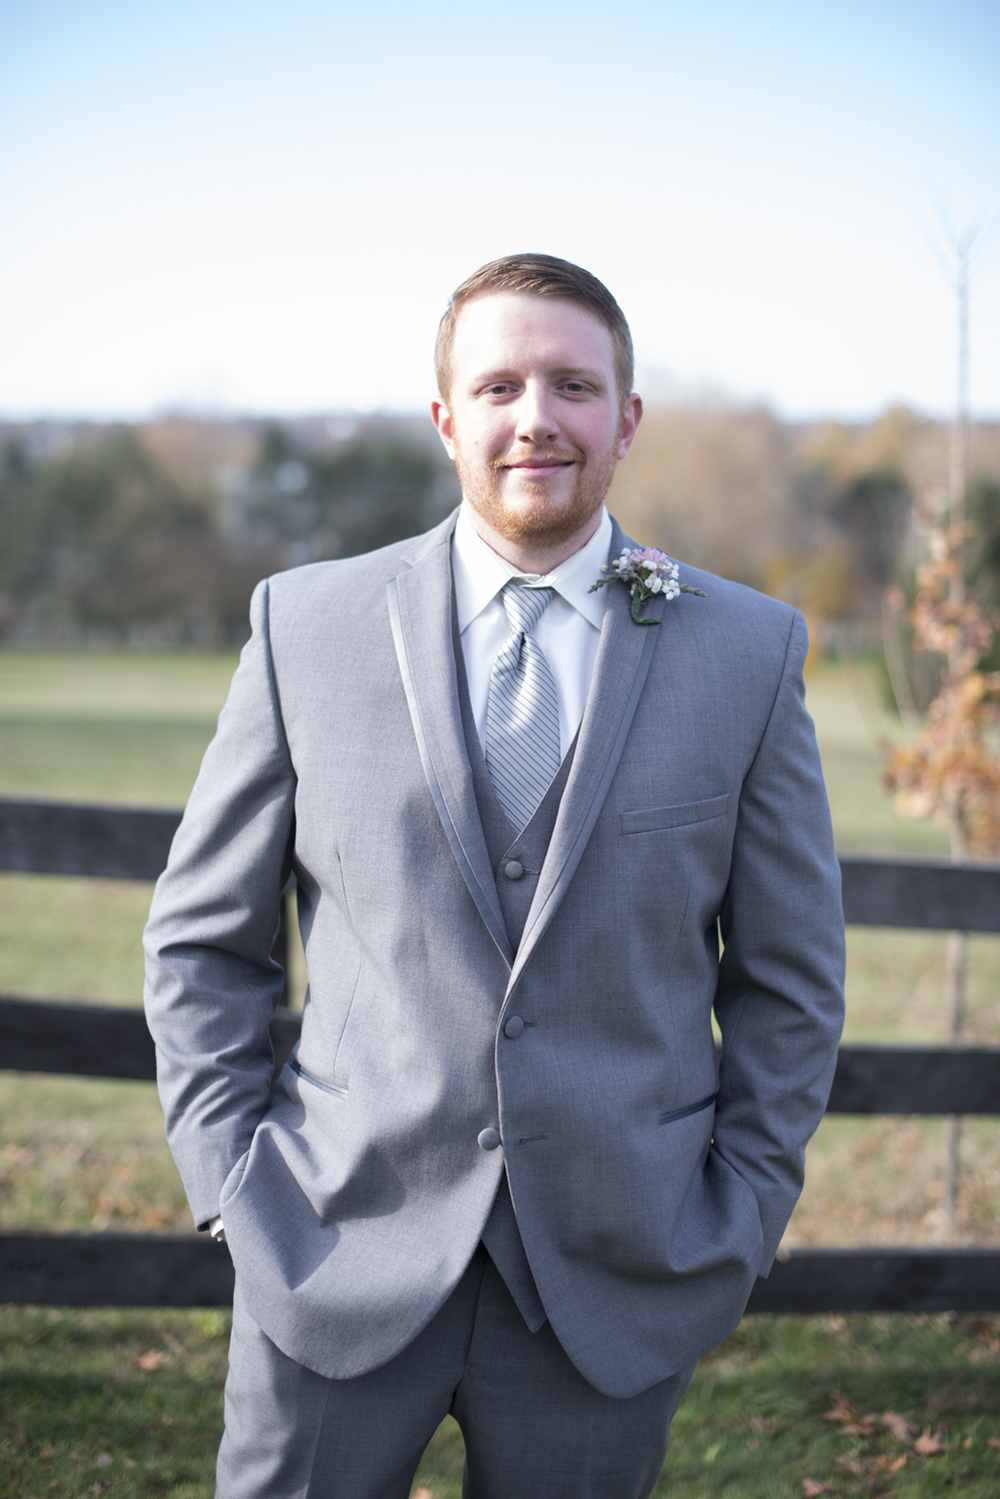 Groom's portrait in gray tuxedo outdoors